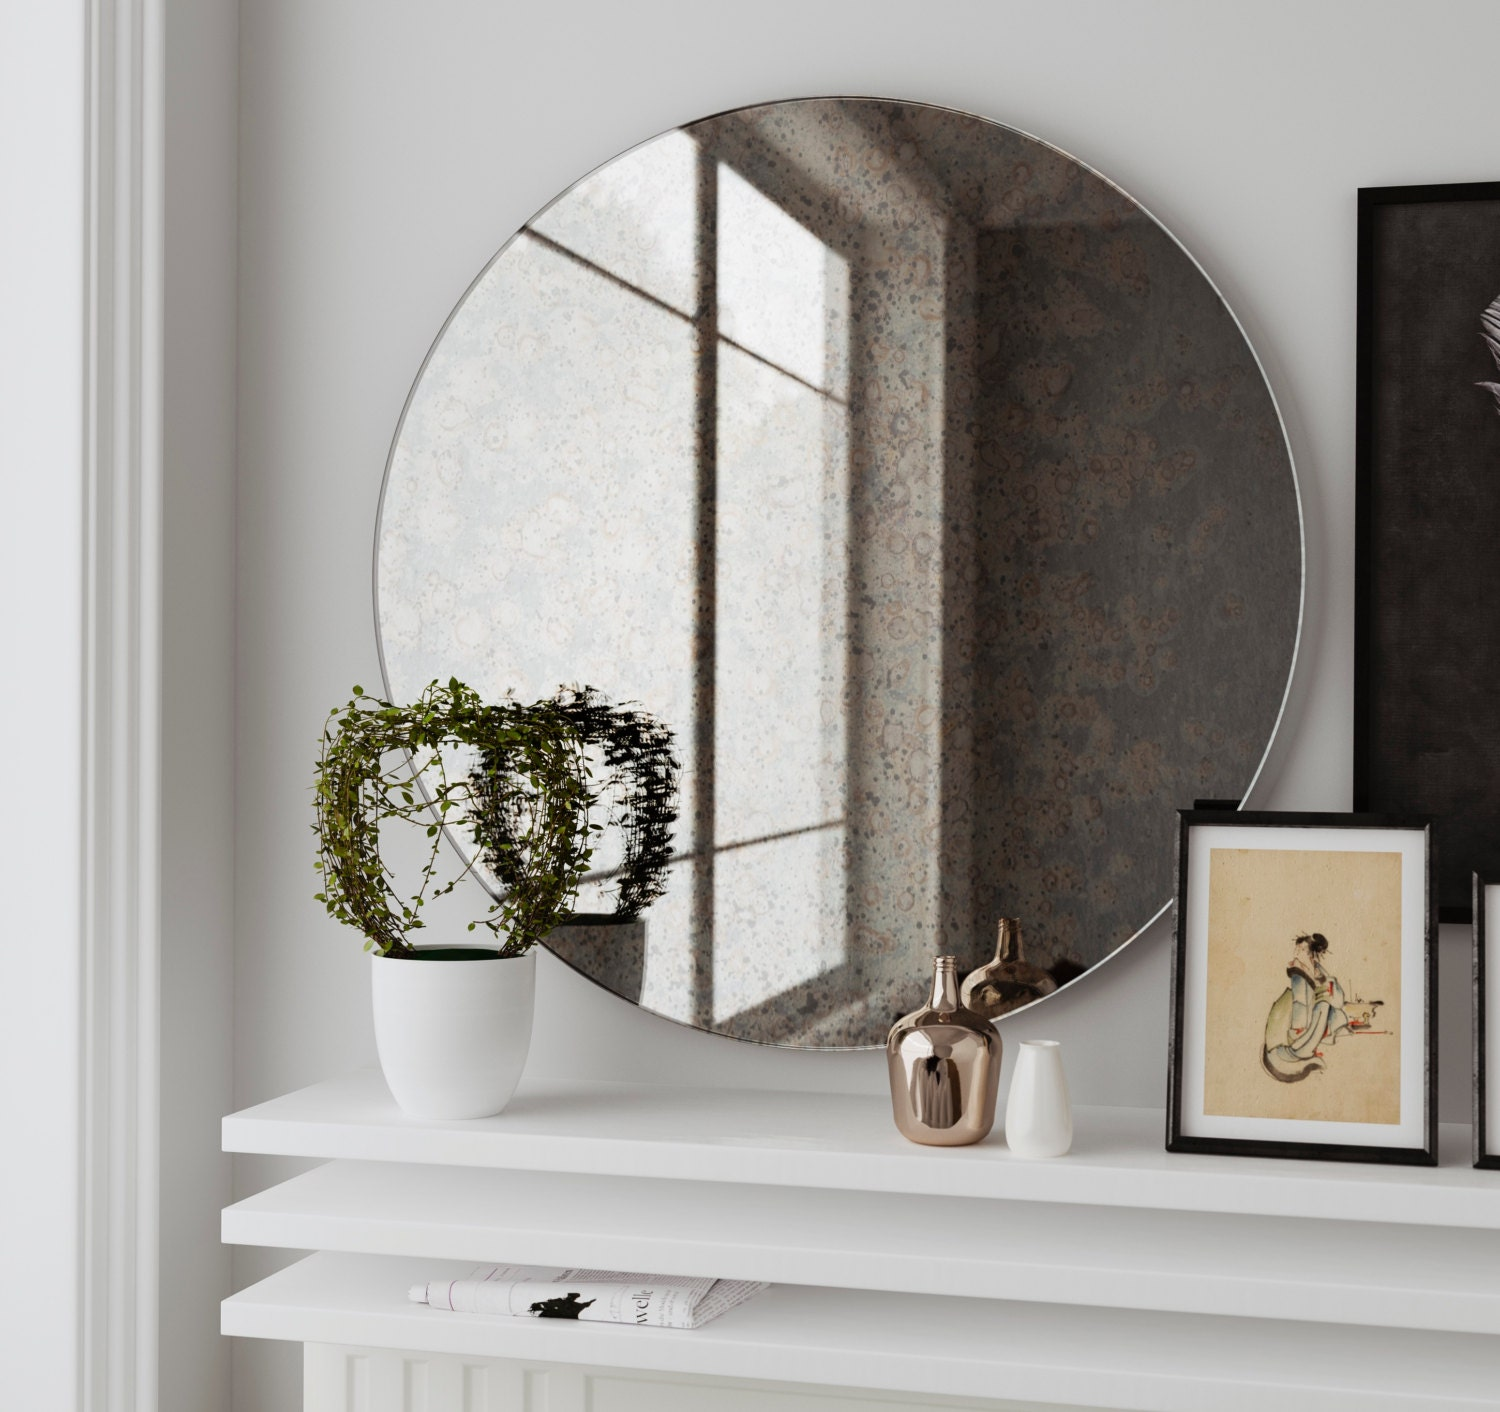 How to hang mirror without frame